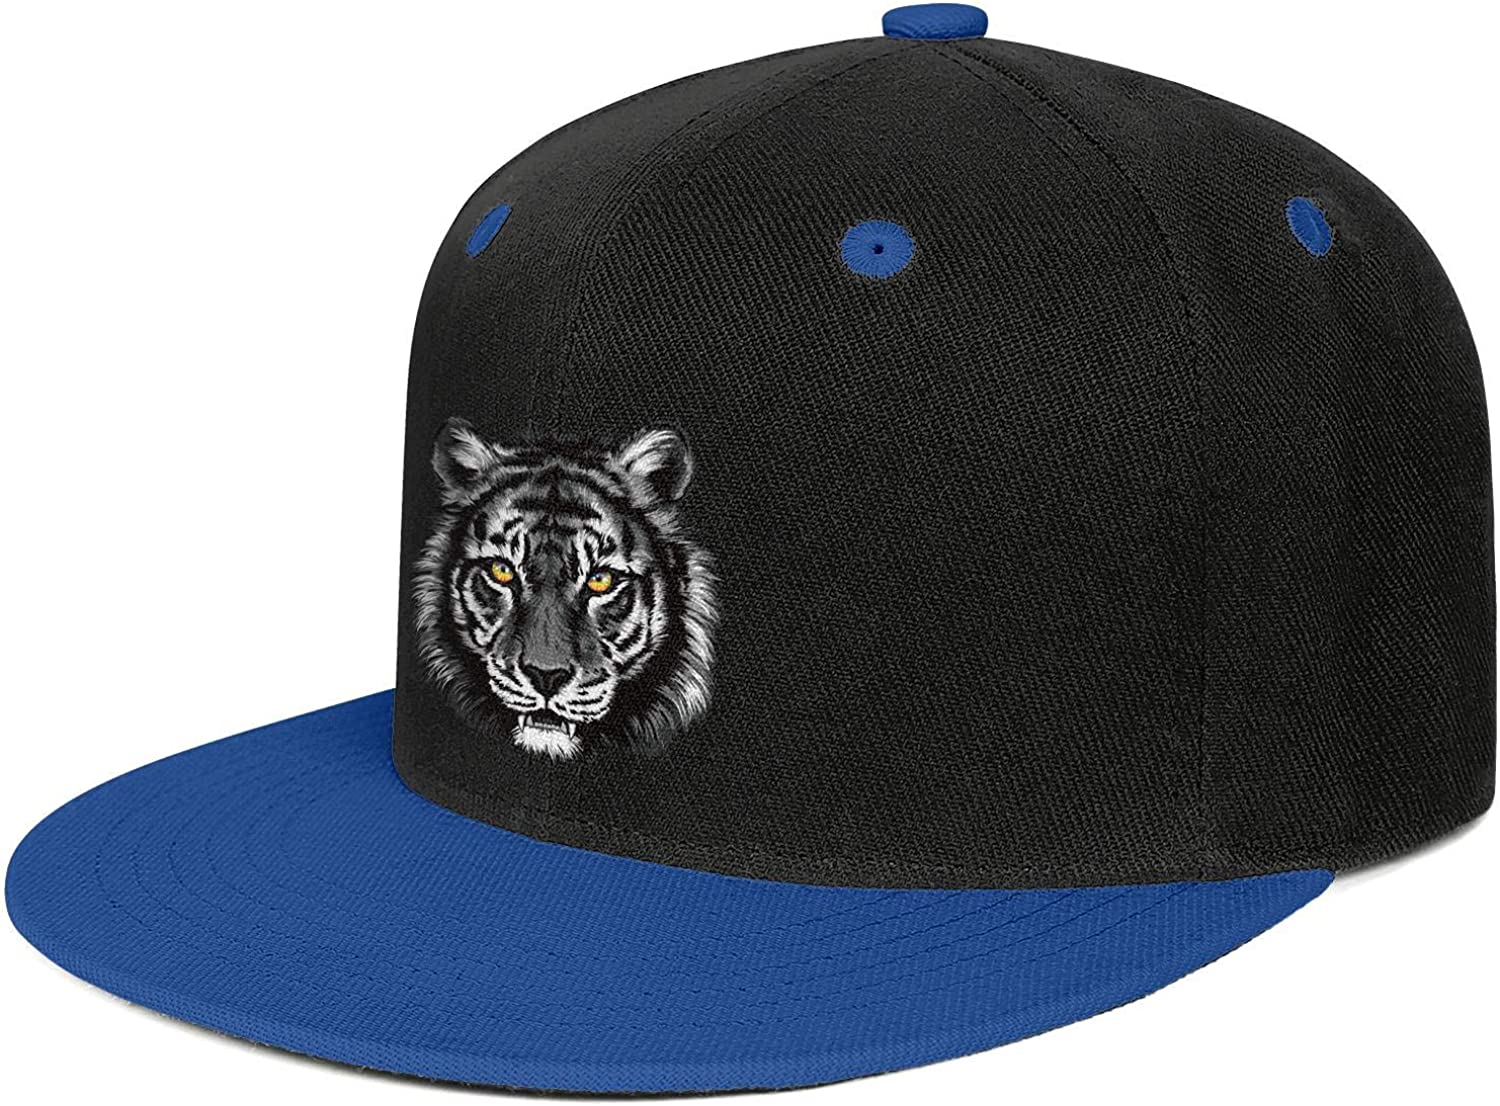 Gray Tiger Colorful Eye Mens Womens Trucker Hats Vintage Snapback Flat Bill Cap